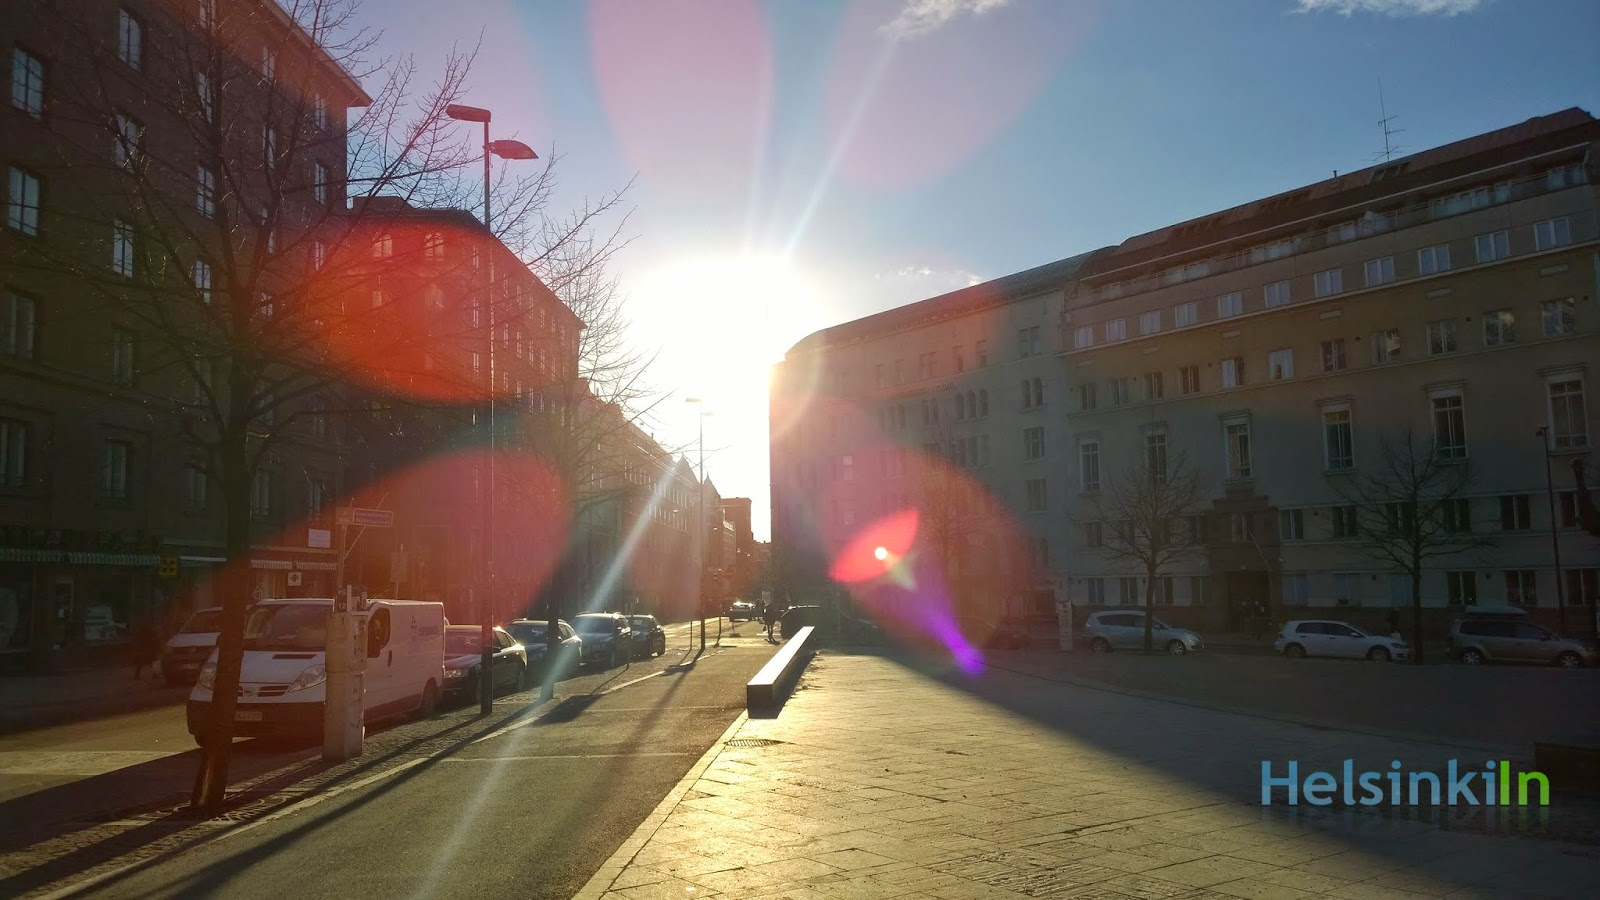 Sunshine in Kamppi